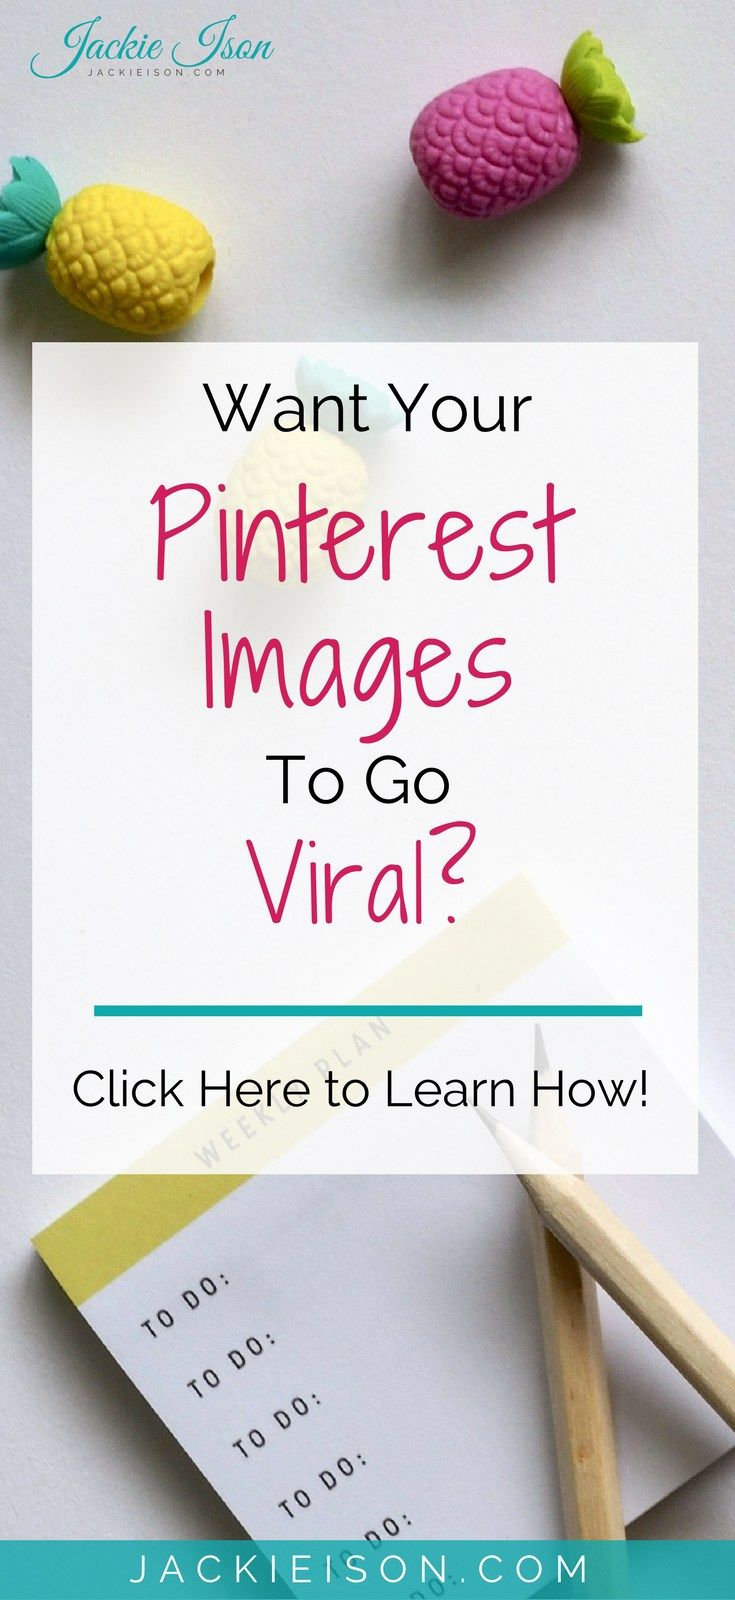 How to Create Pinterest Images that Go Viral for Free! Your Pinterest images can make or break your Pinterest strategy. Get more repins, get more clicks, increase pageviews, and create viral pins for free. #pinterest #pintereststrategy #pinterestimages